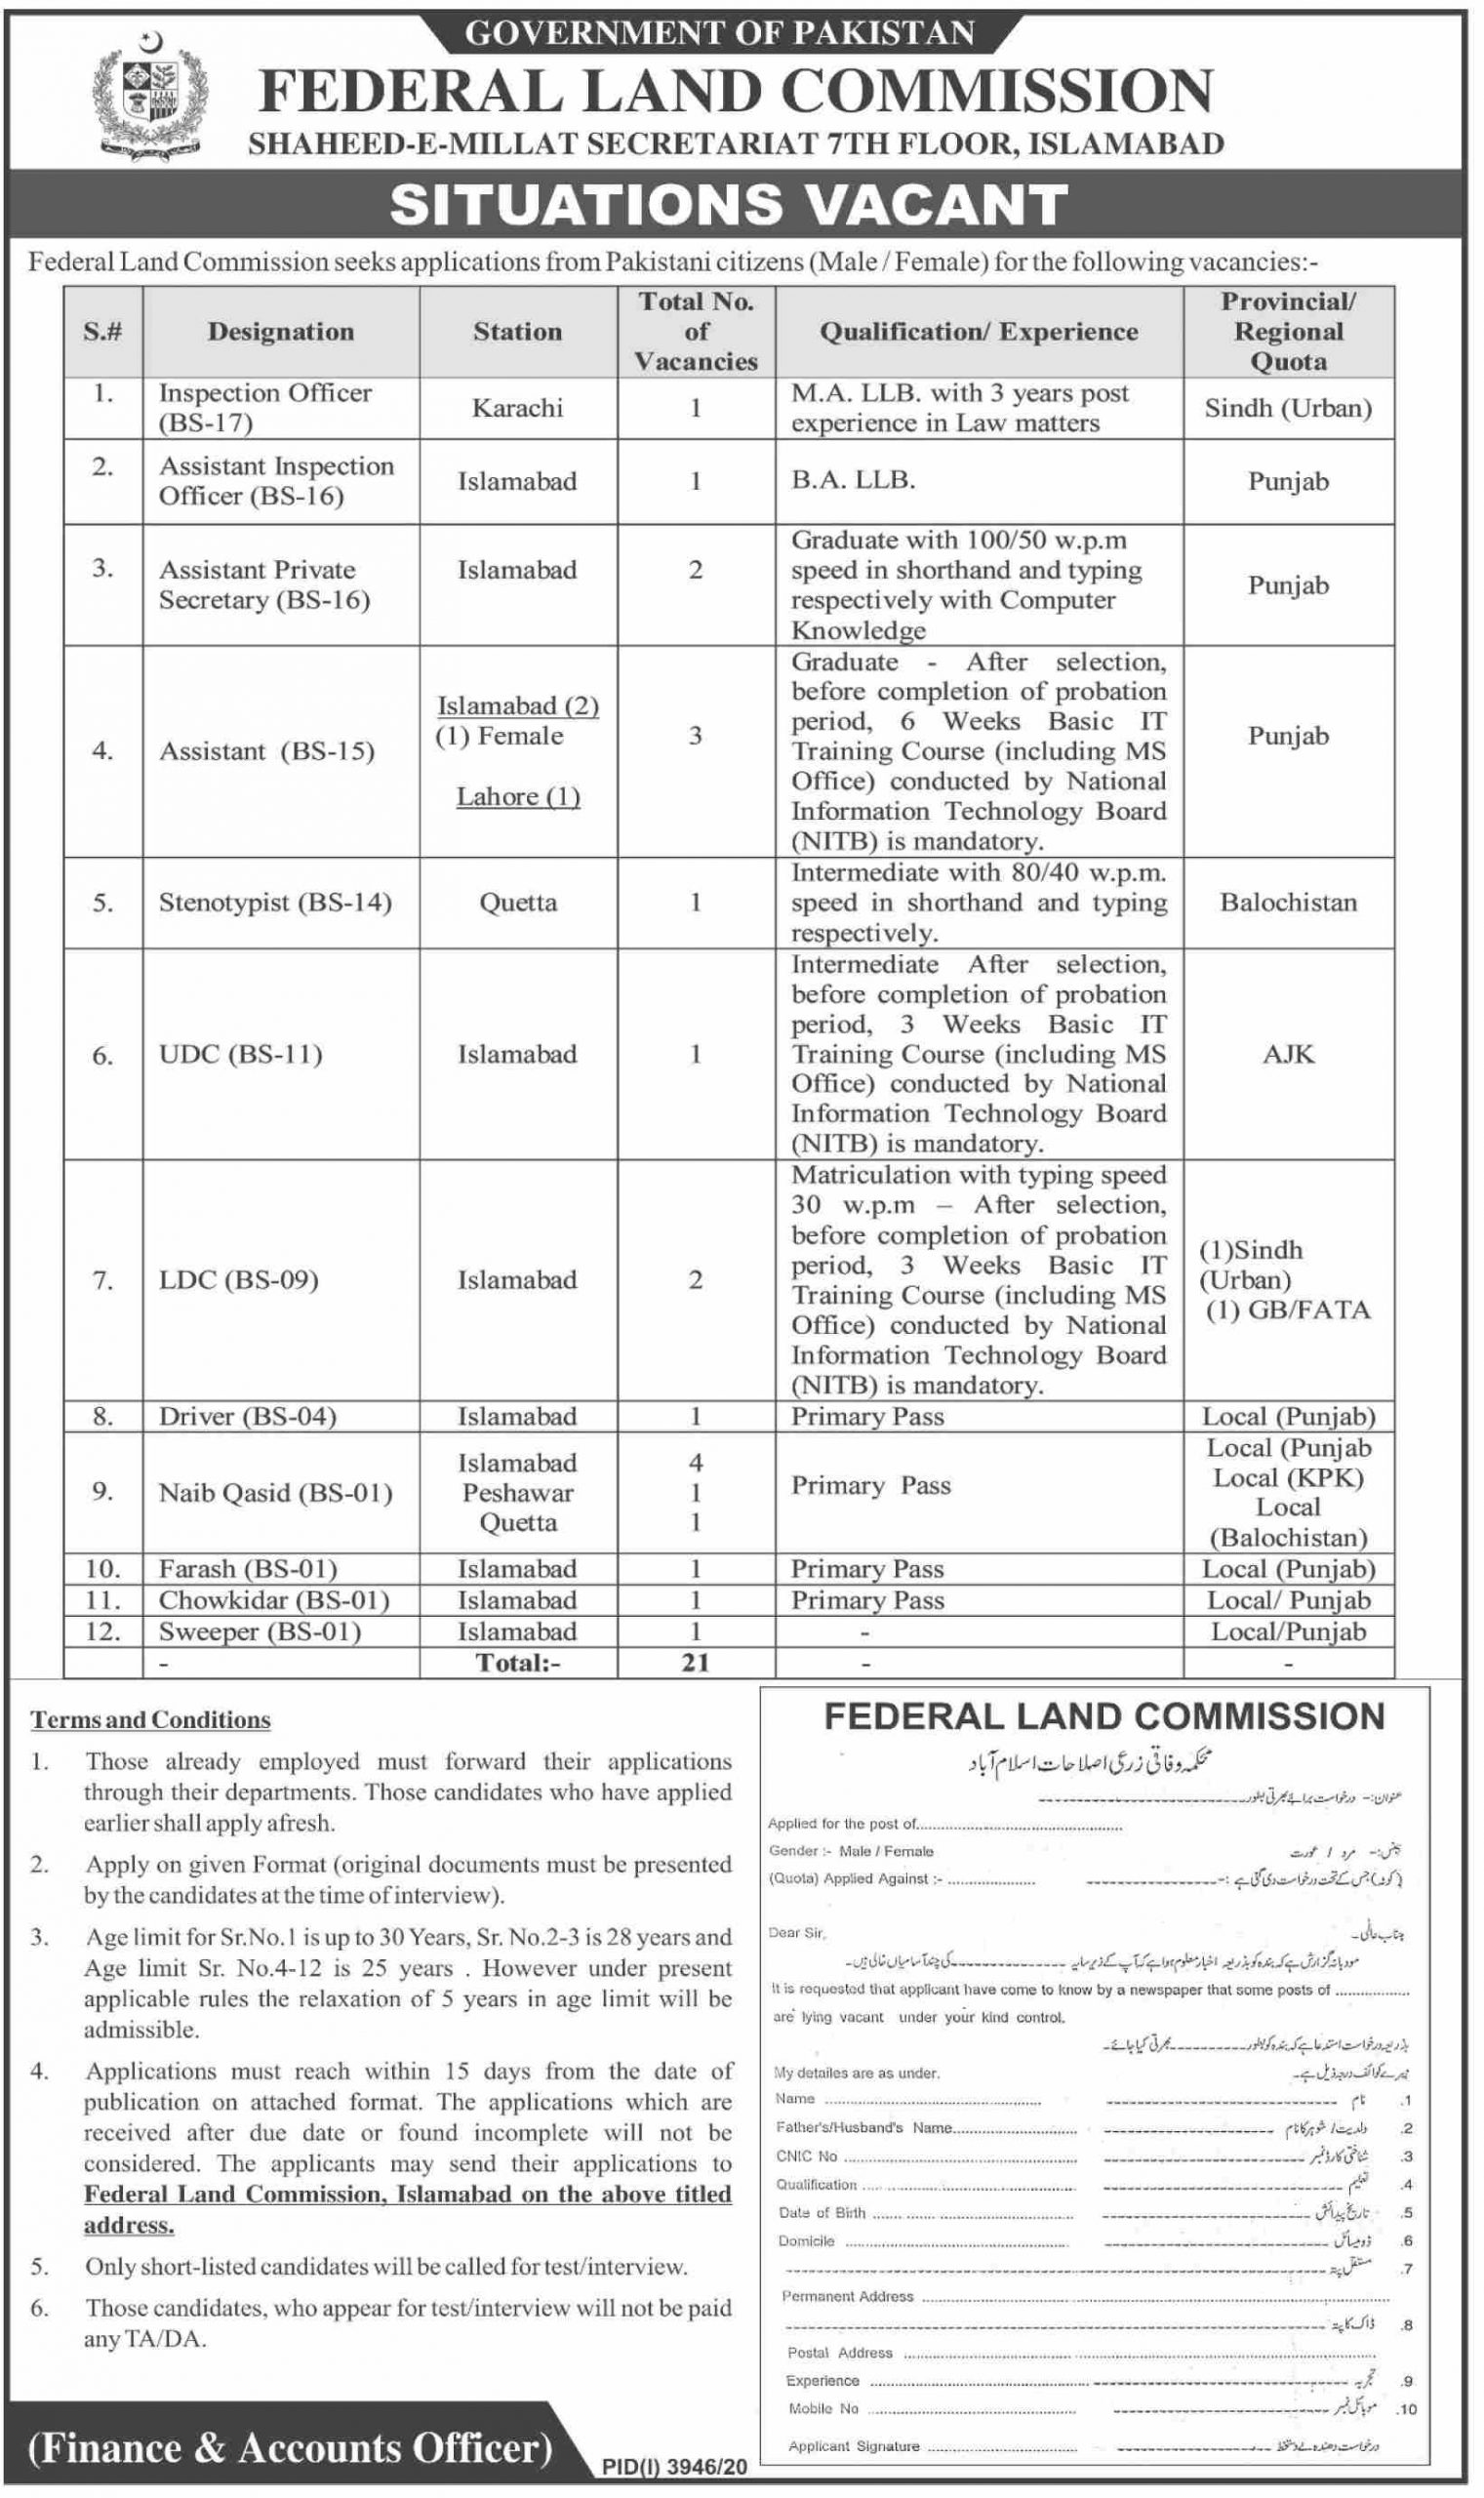 Federal Land Commission Government of Pakistan Jobs January 2021